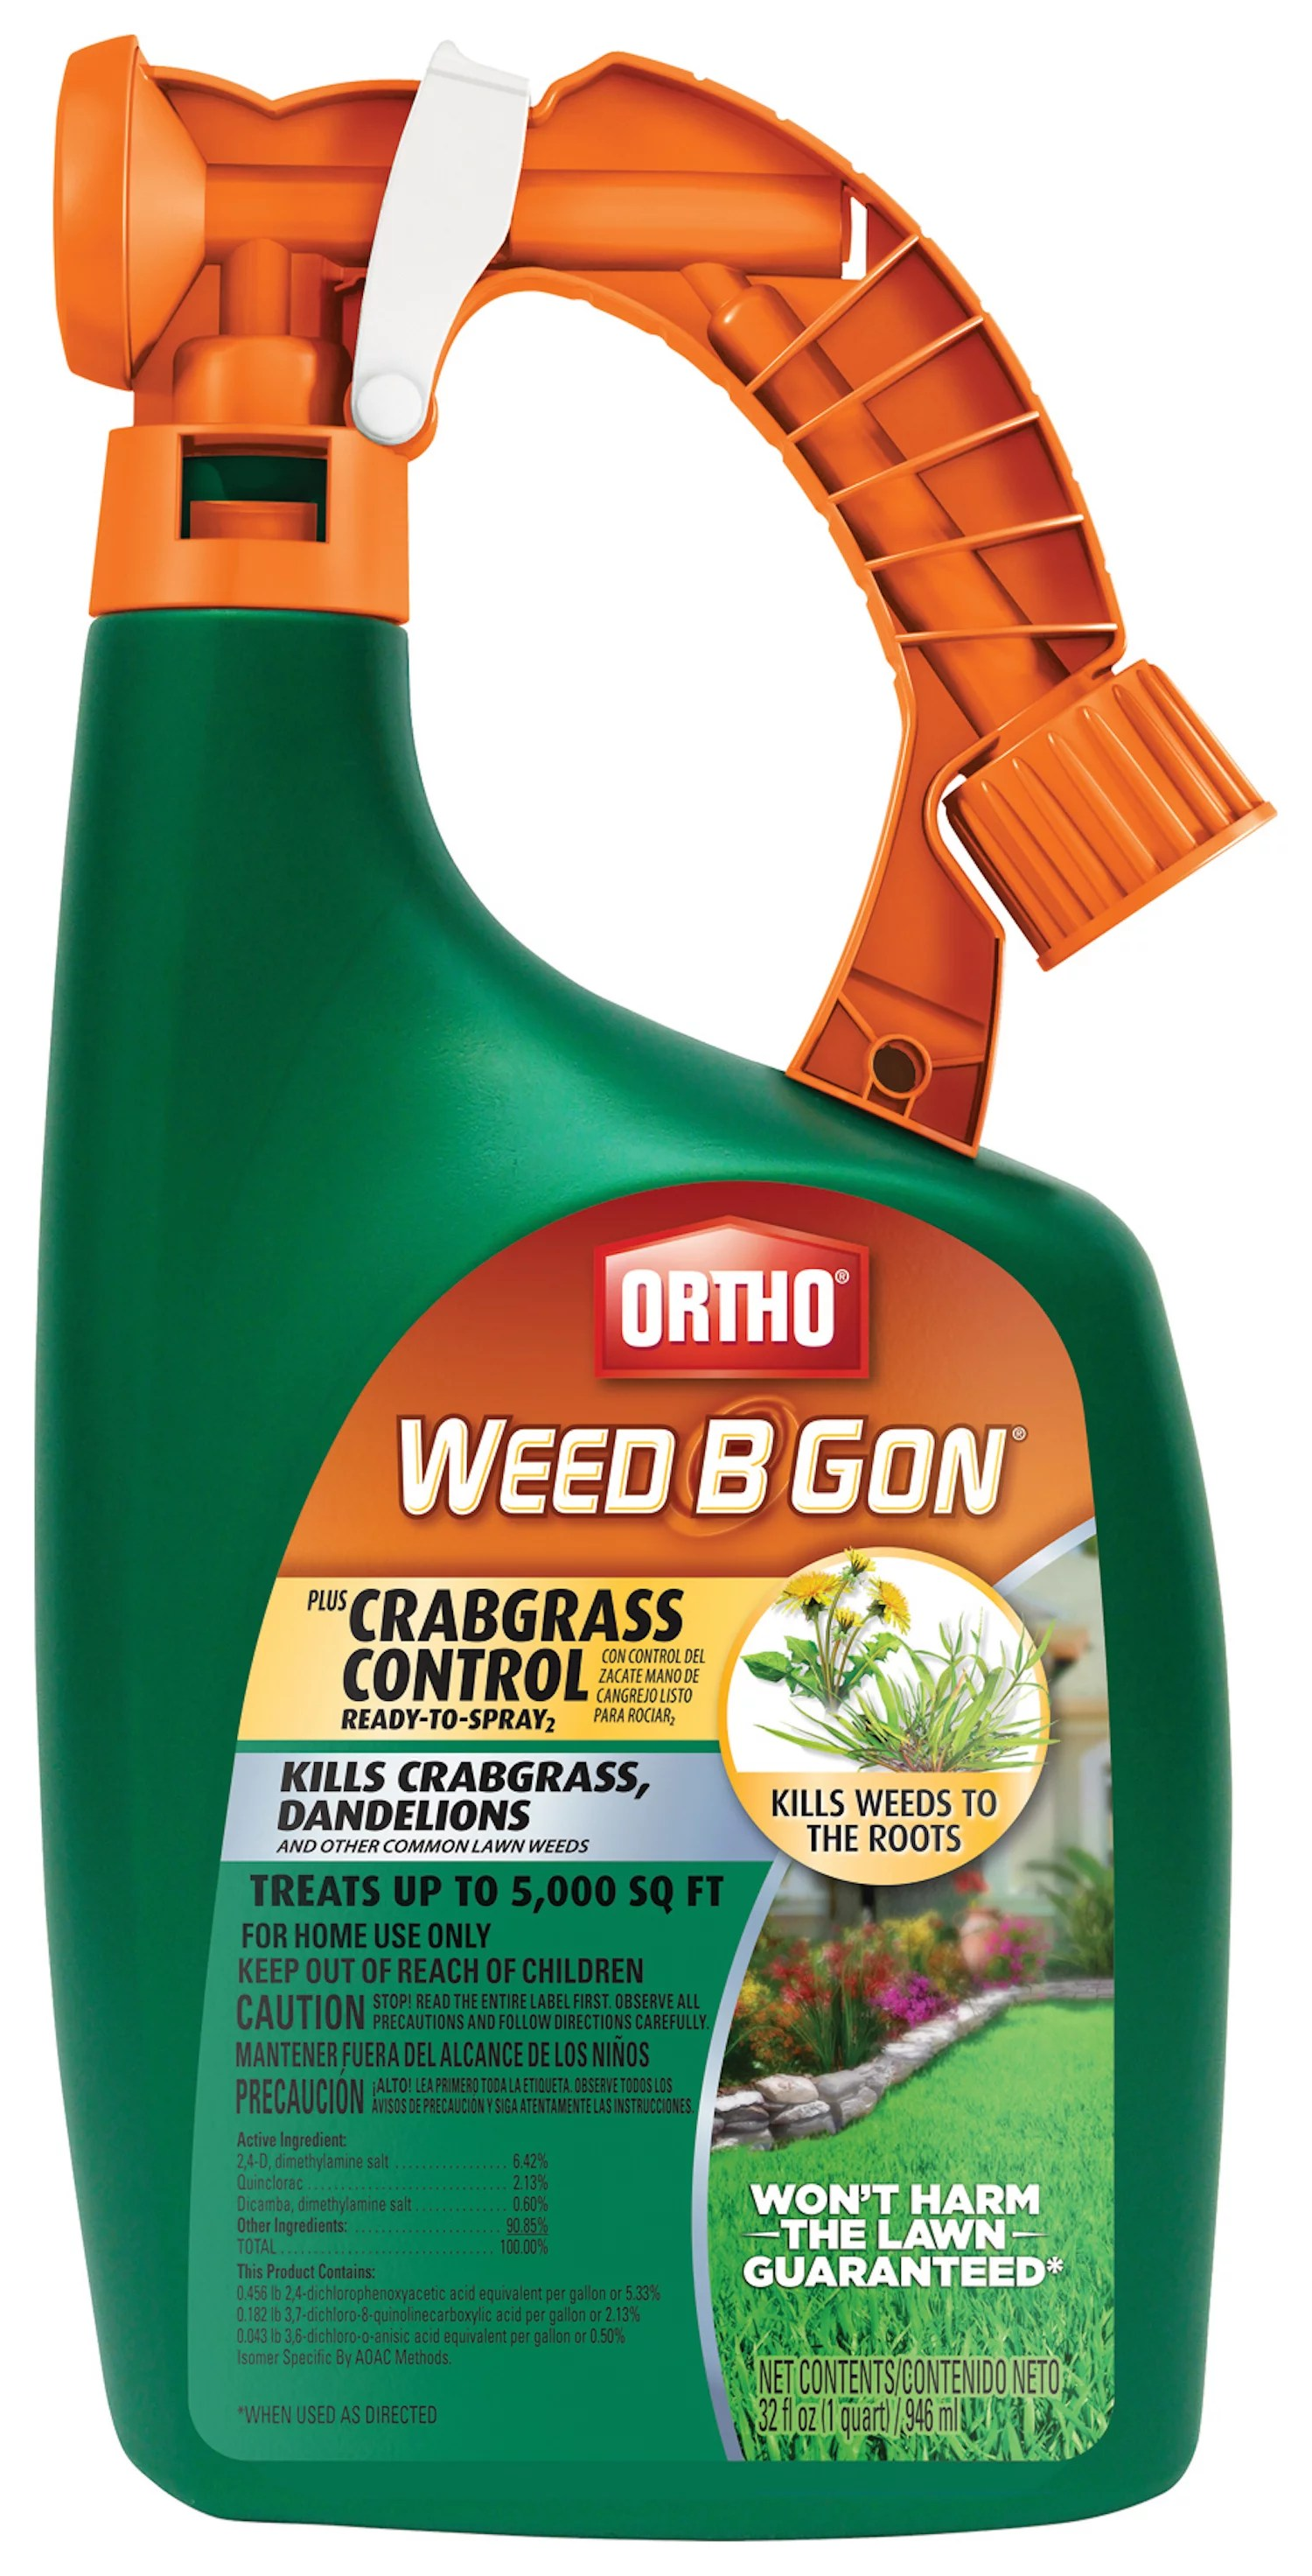 Ortho Weed B Gon Plus Crabgrass Control Ready-To-Spray2, 32 oz.